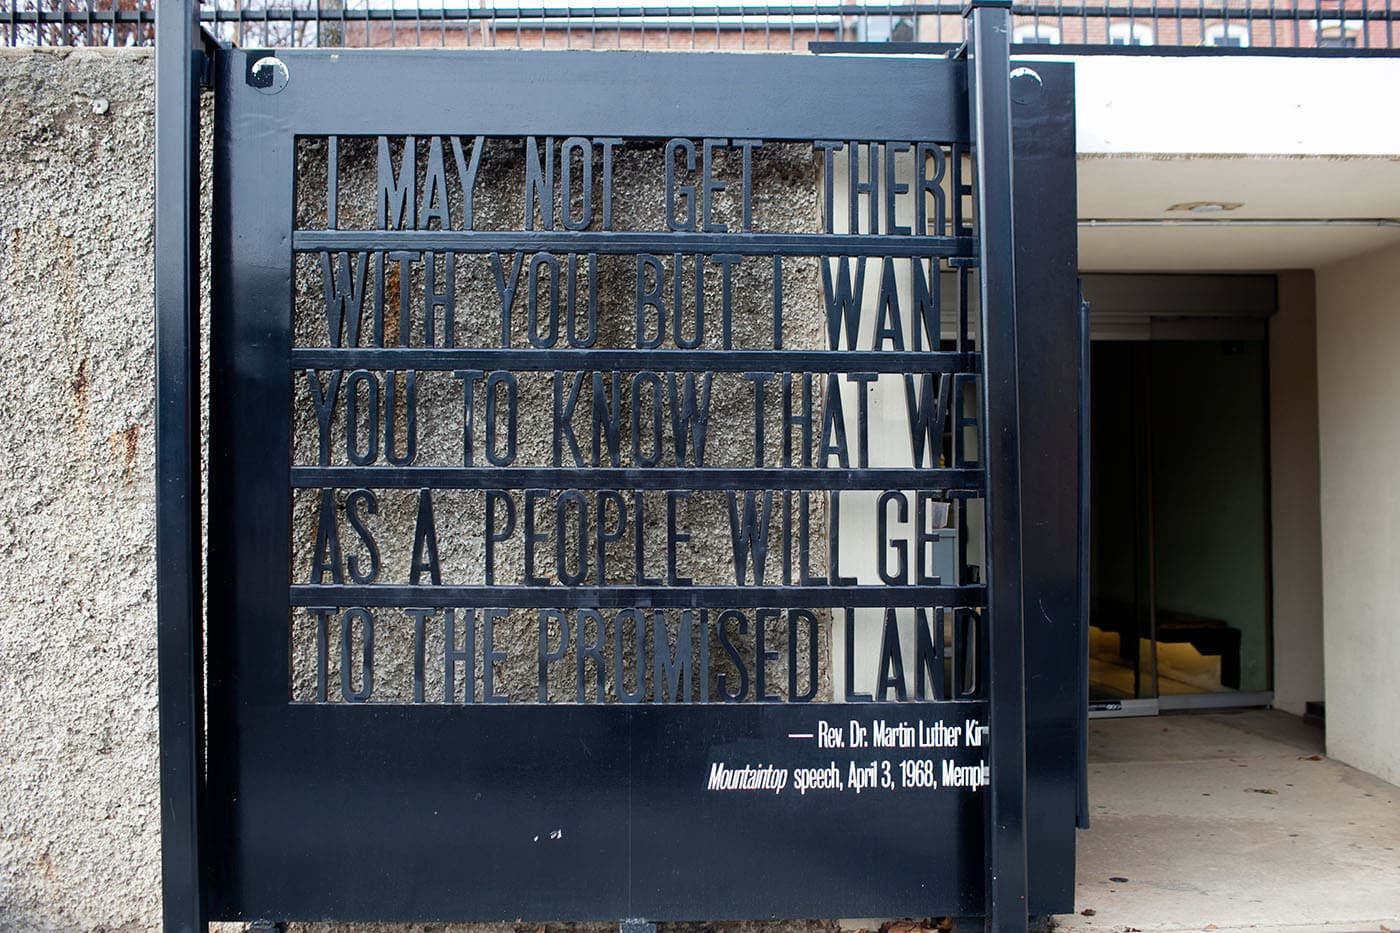 National Civil Rights Museum in Memphis, Tennessee.